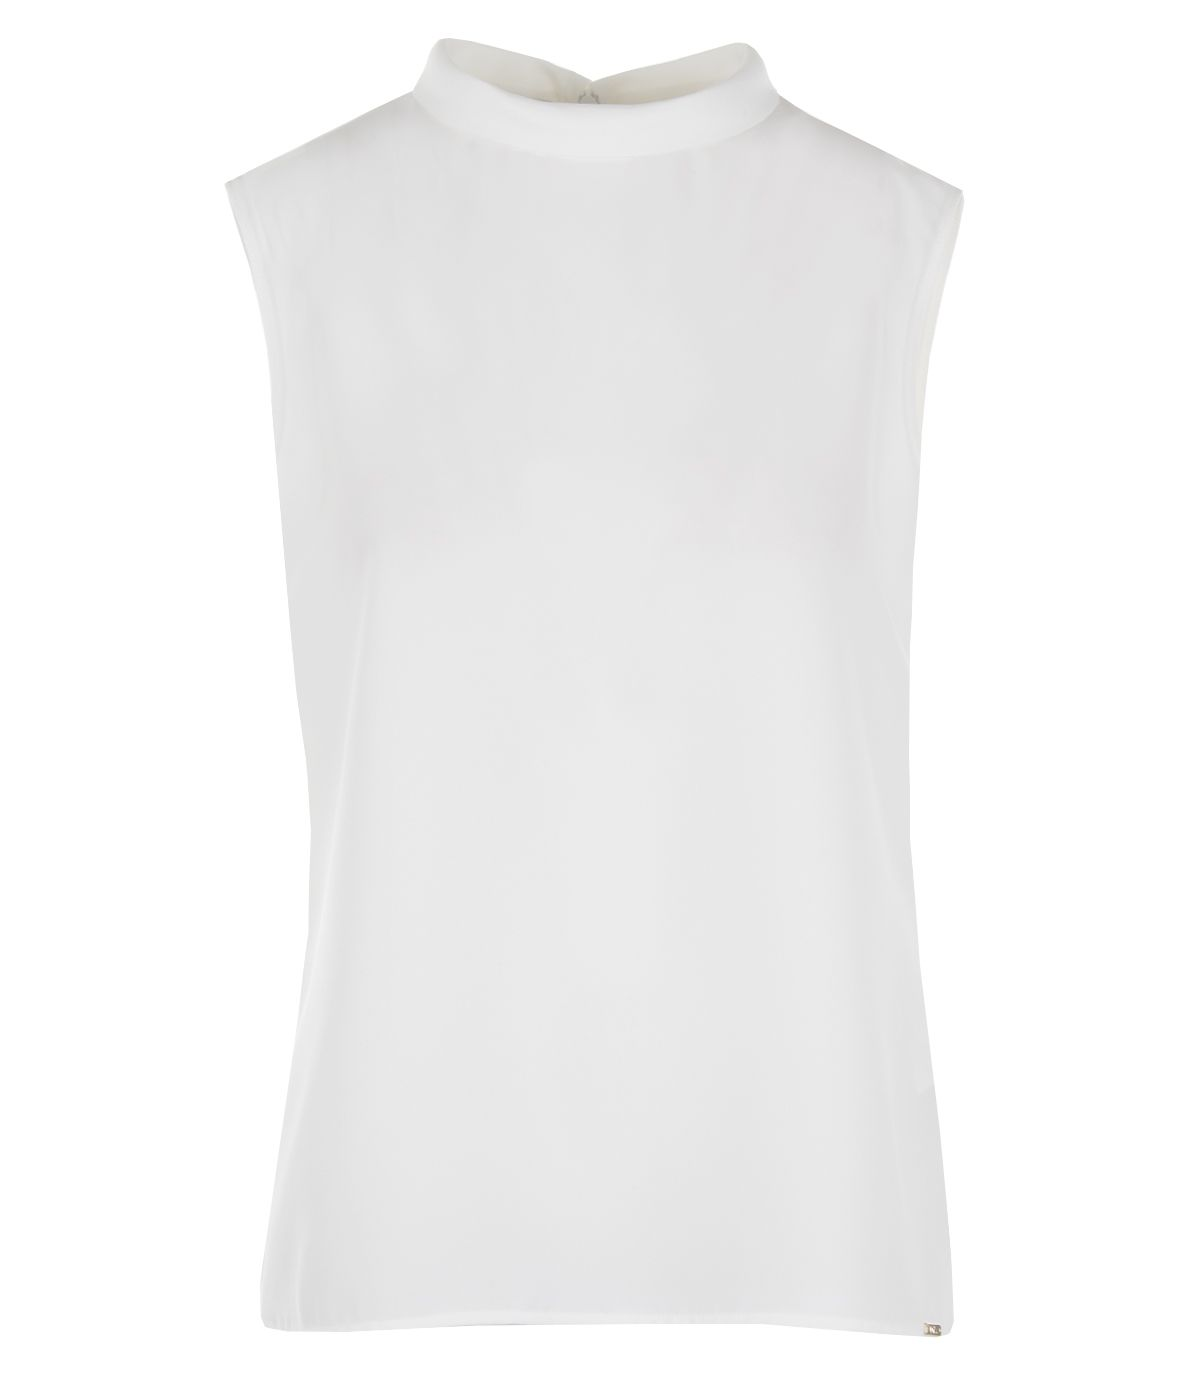 Sleeveless blouse with stand-up collar 0